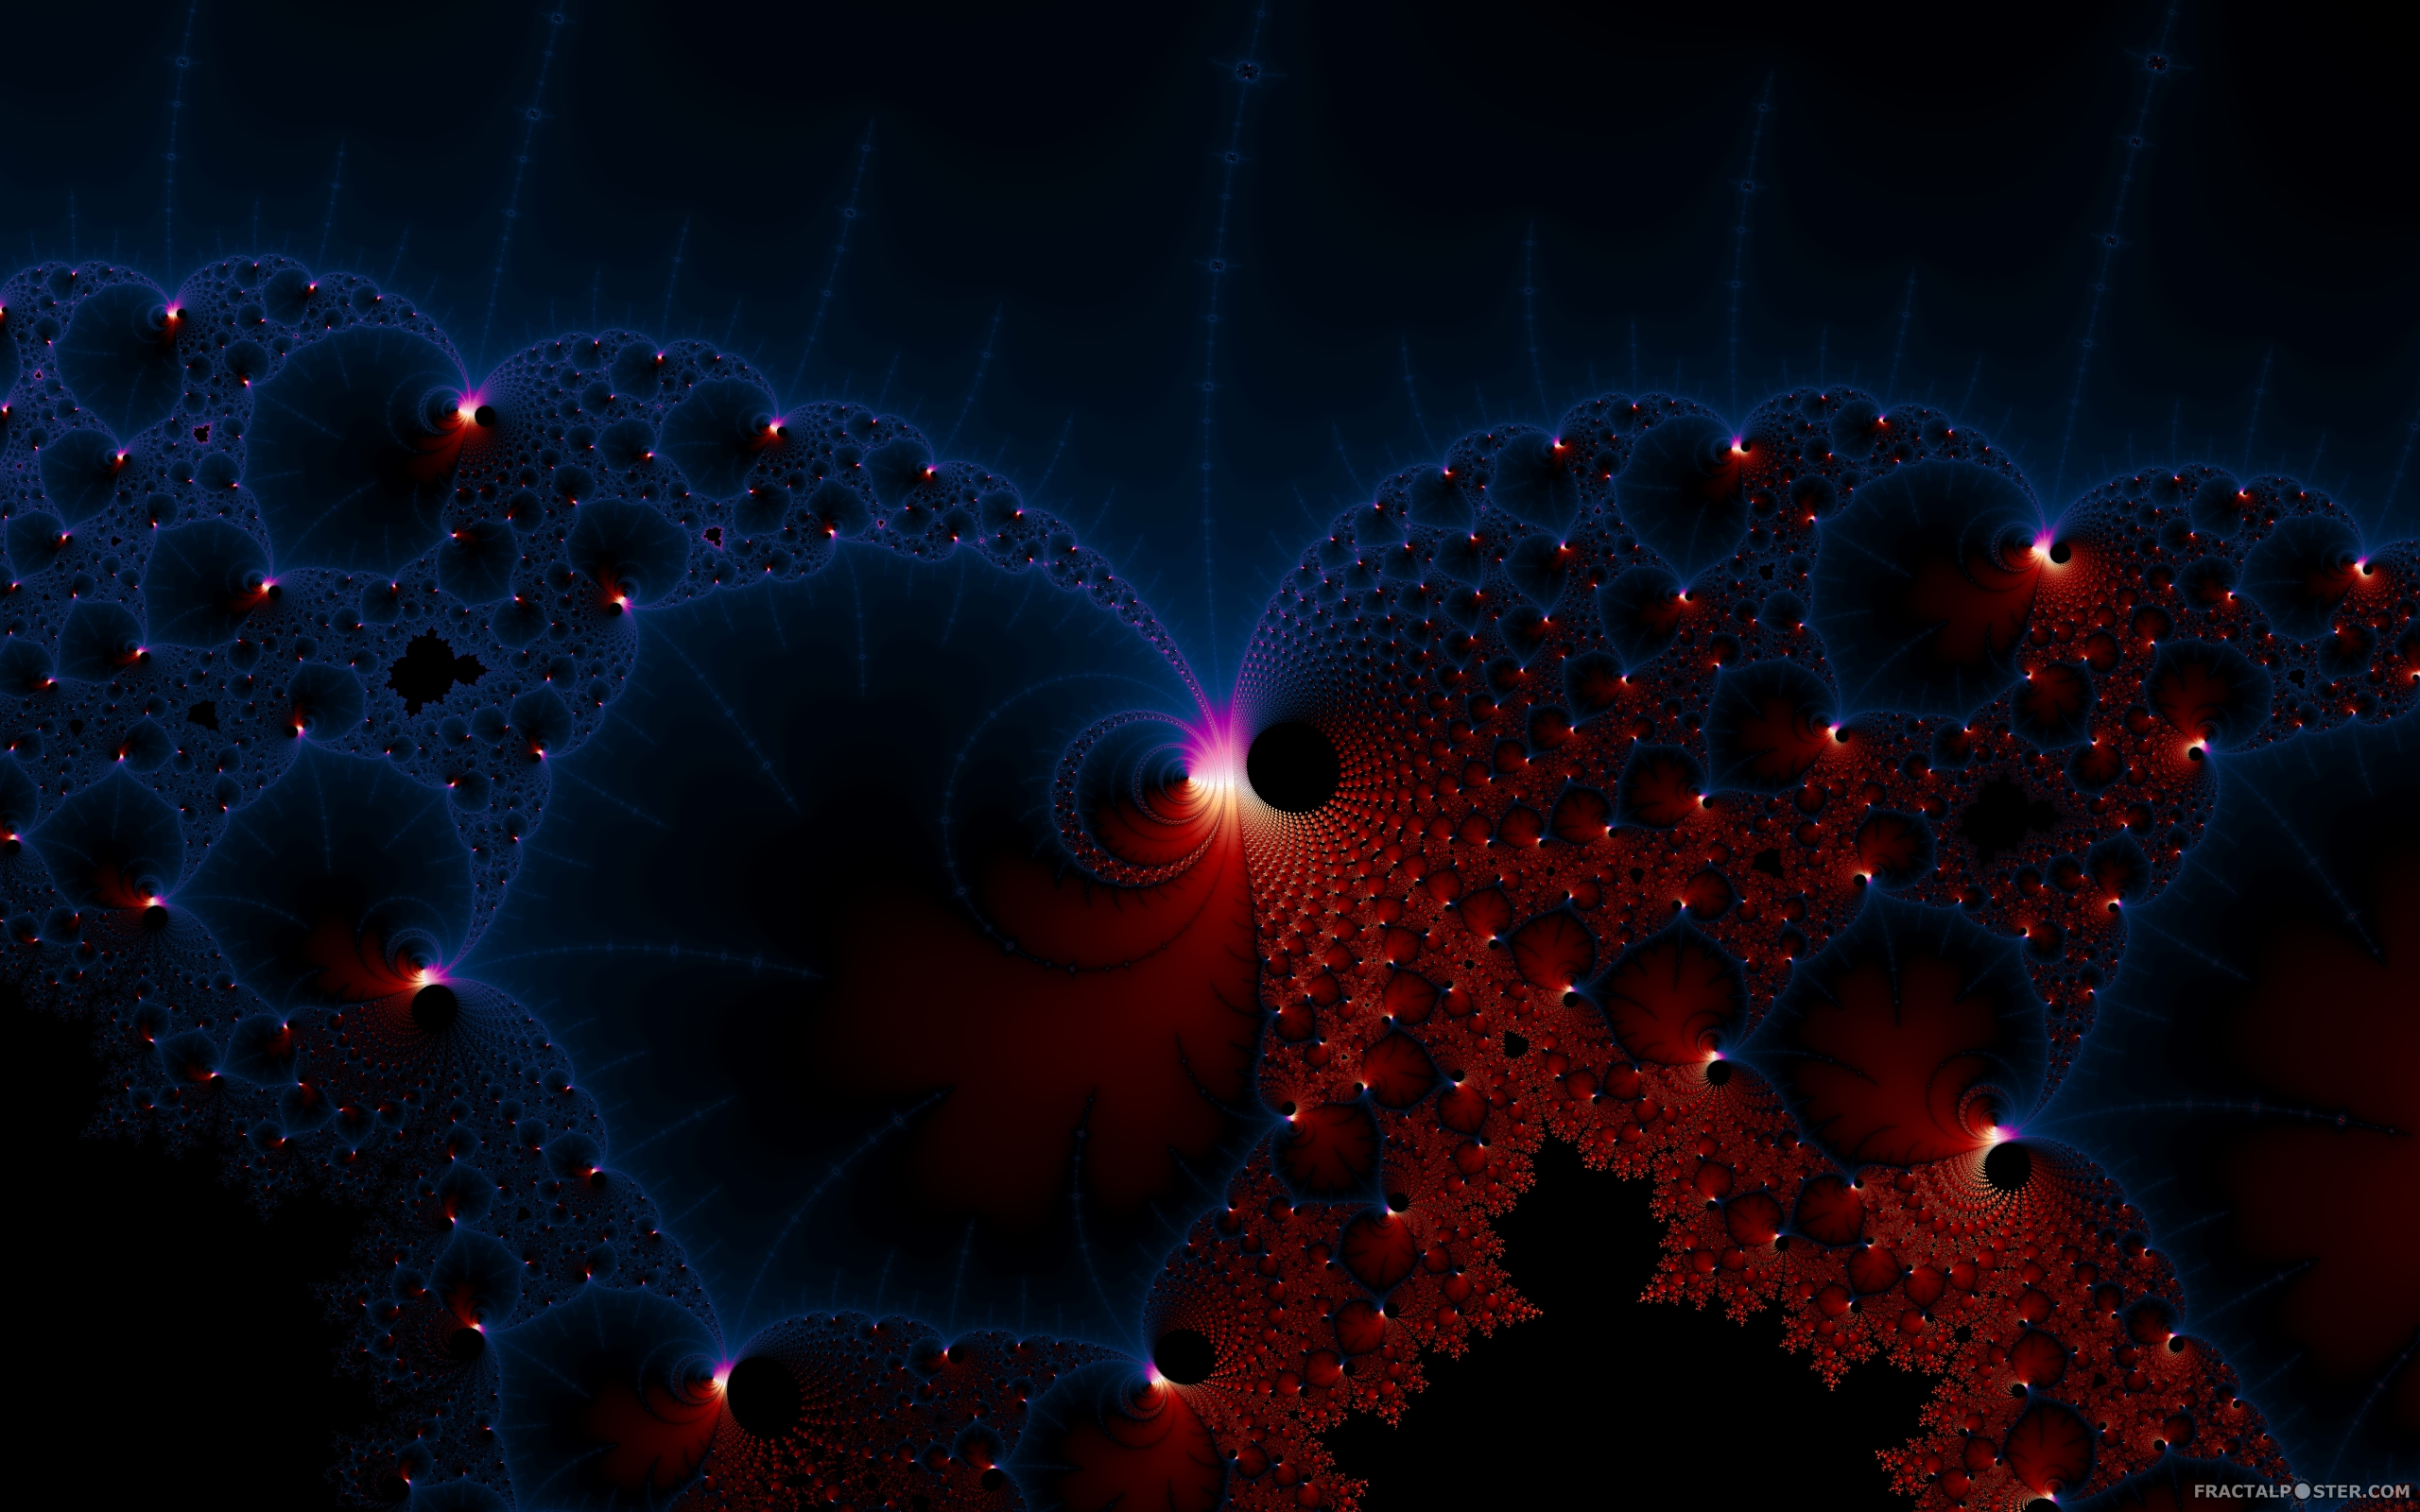 Red Blue Cells fractal image by Spac3case HD Wallpapers